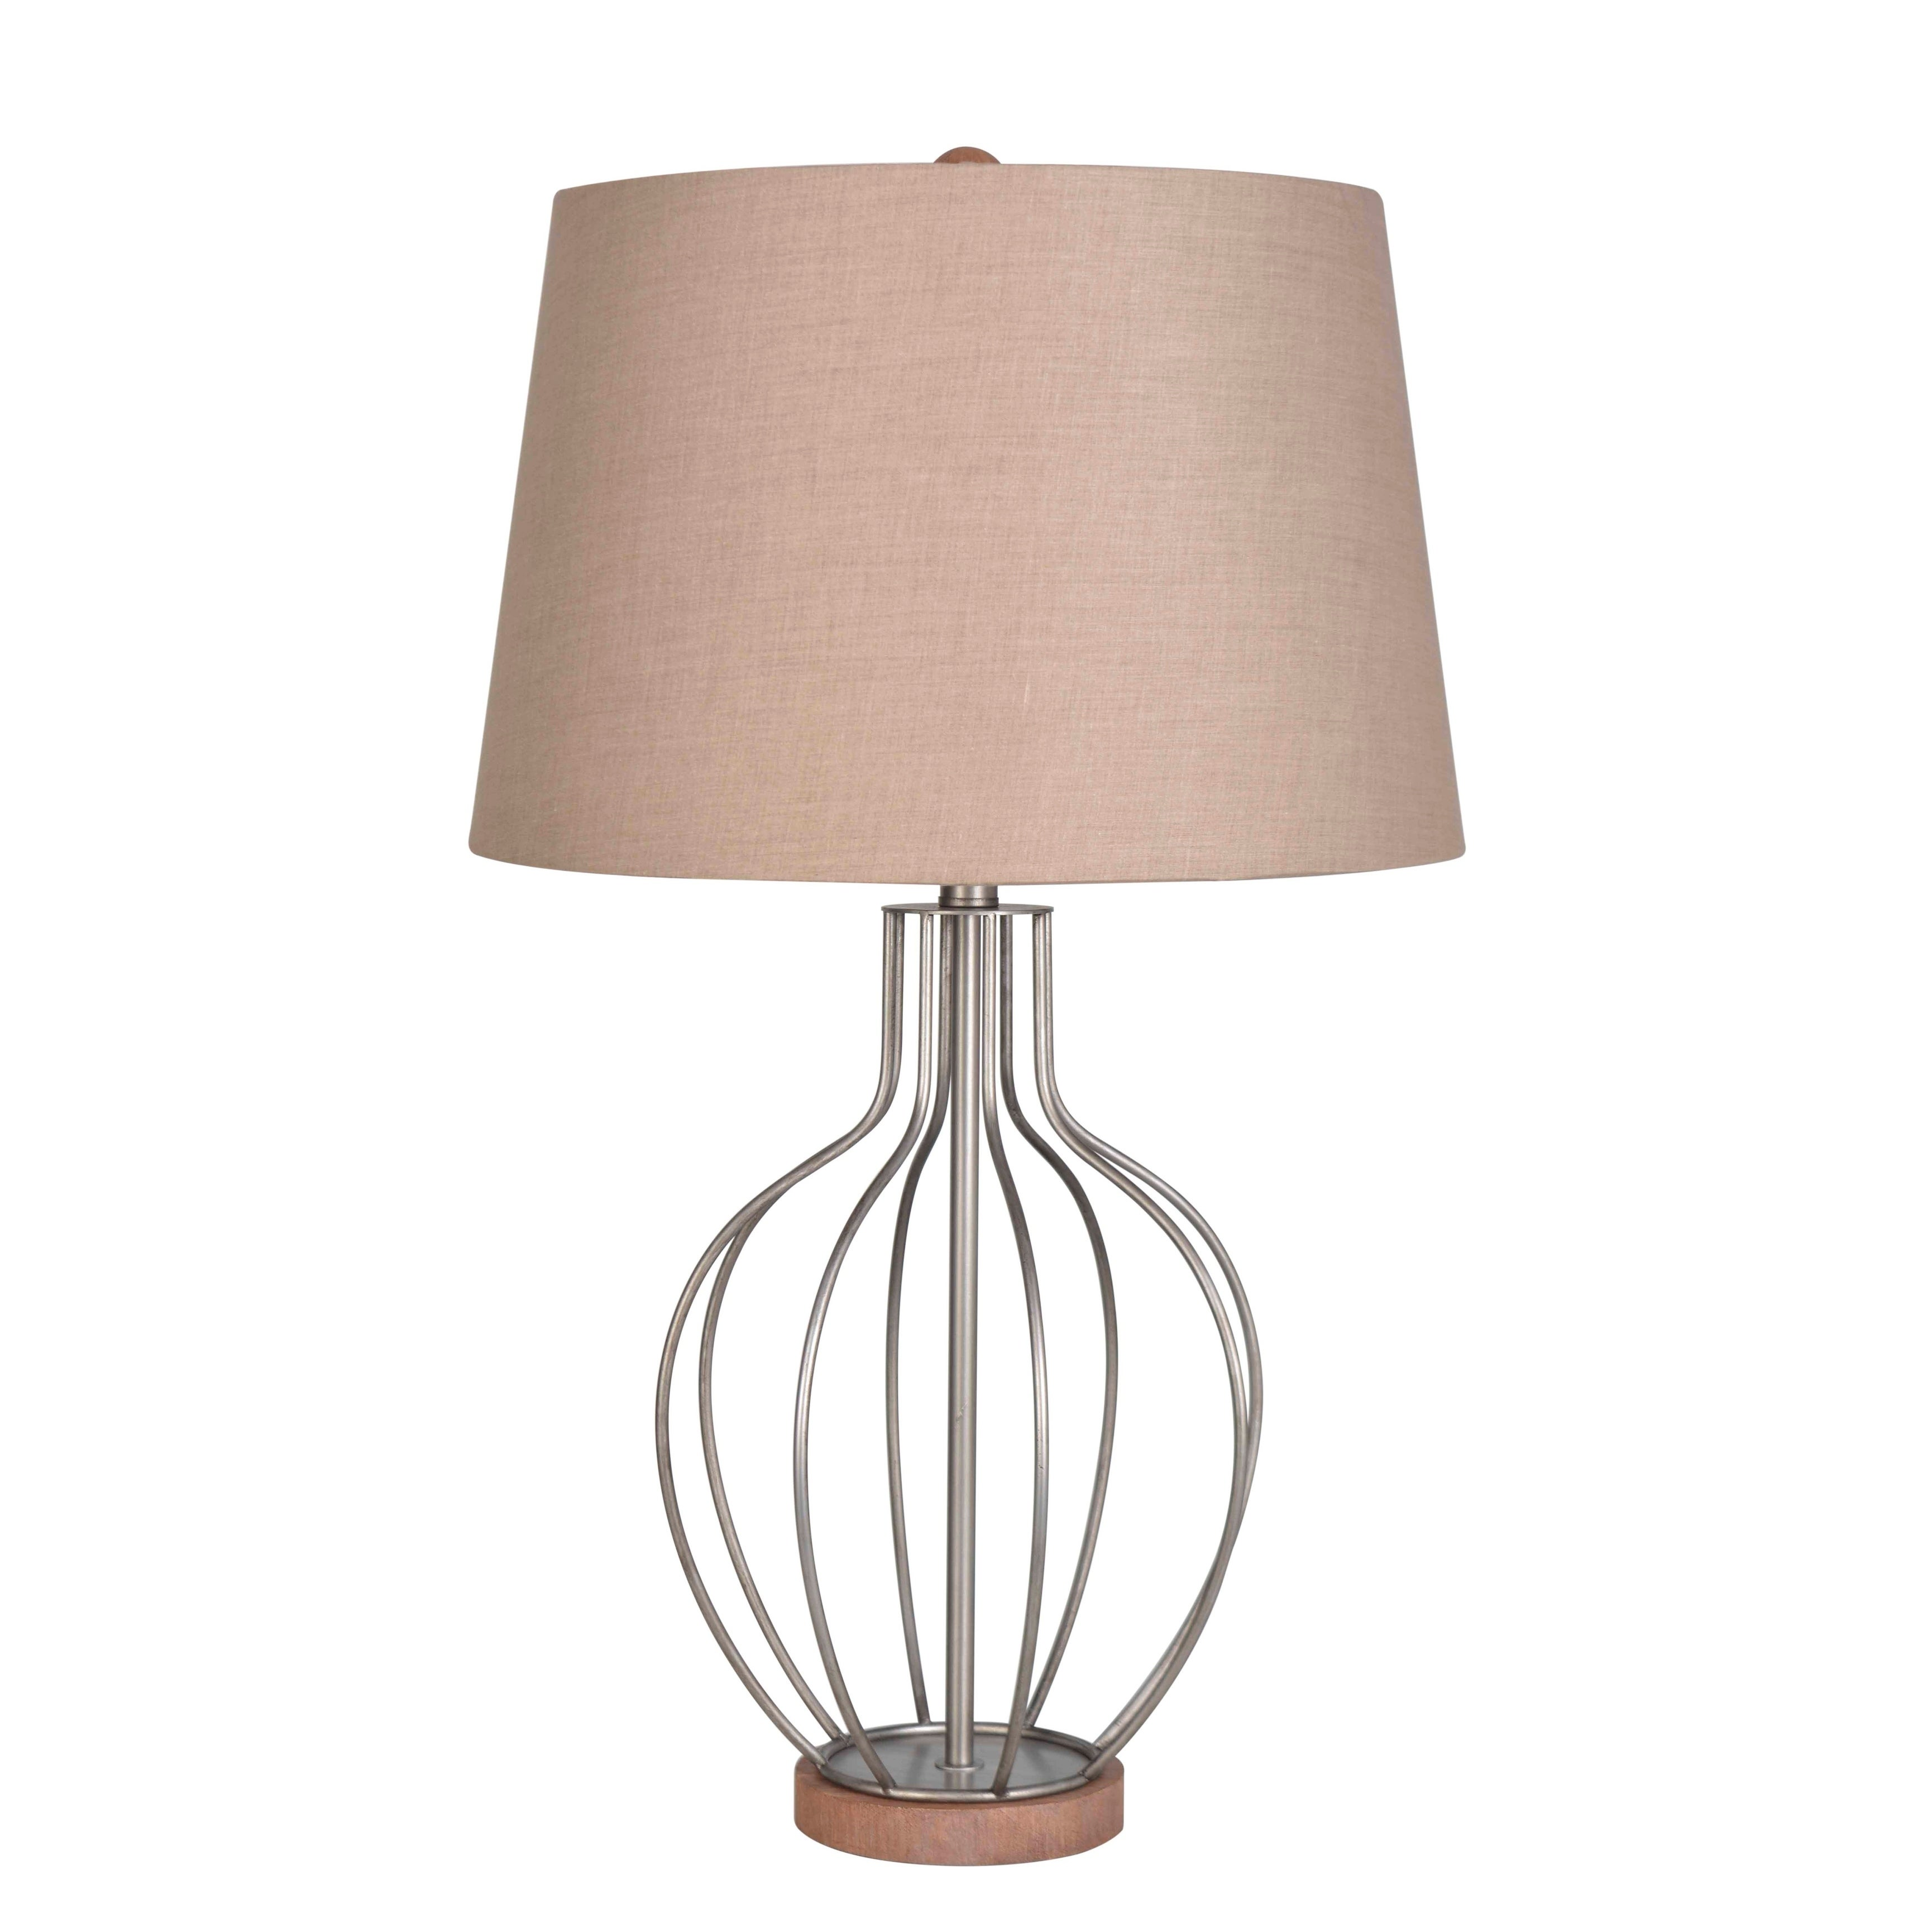 Lamps Per Se 28 5 Inch Aged Pewter Table Lamp Set Of 2 28 5 Overstock 28684008